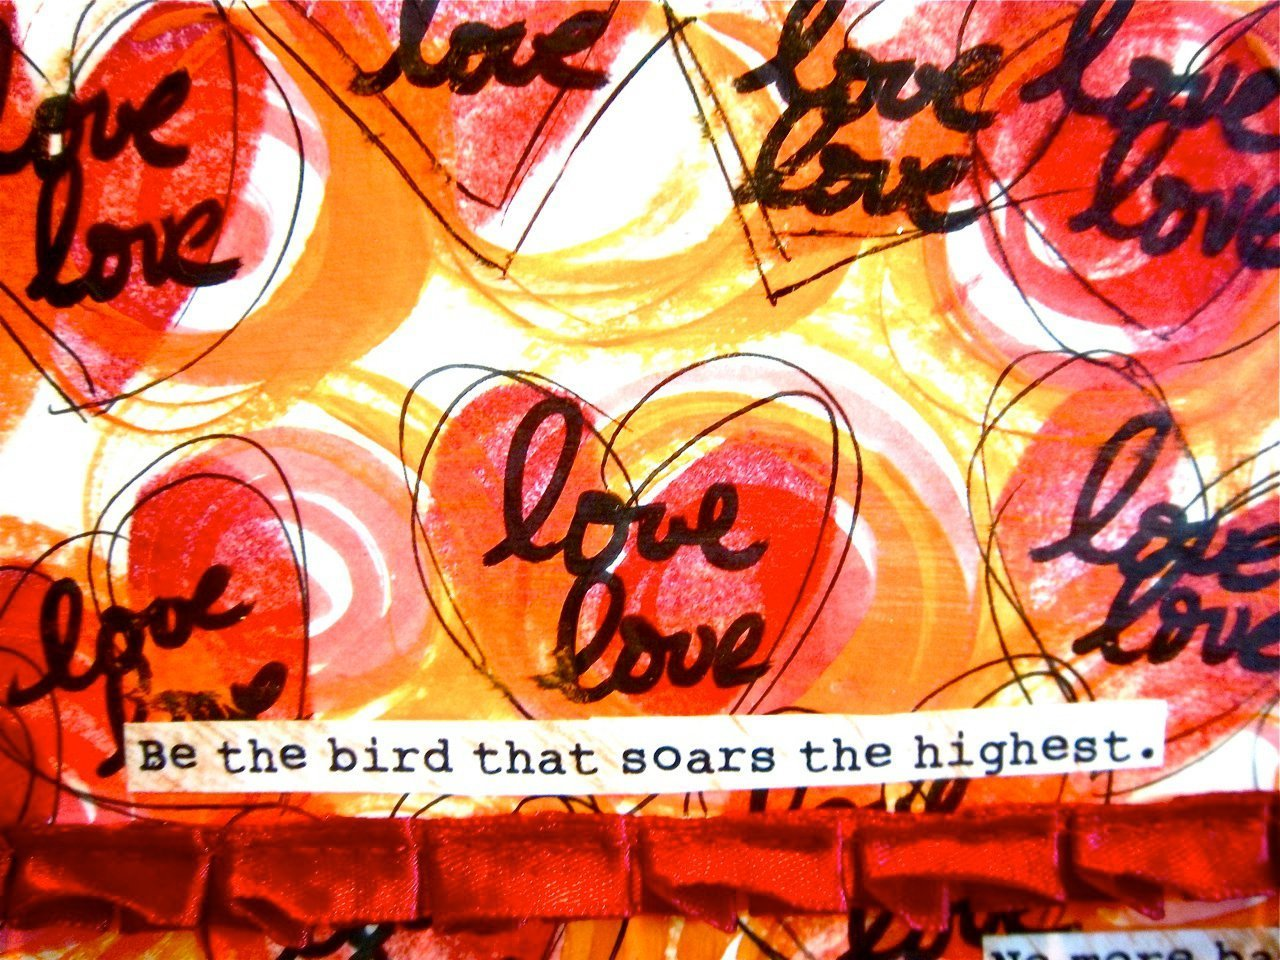 The bird that soars the highest